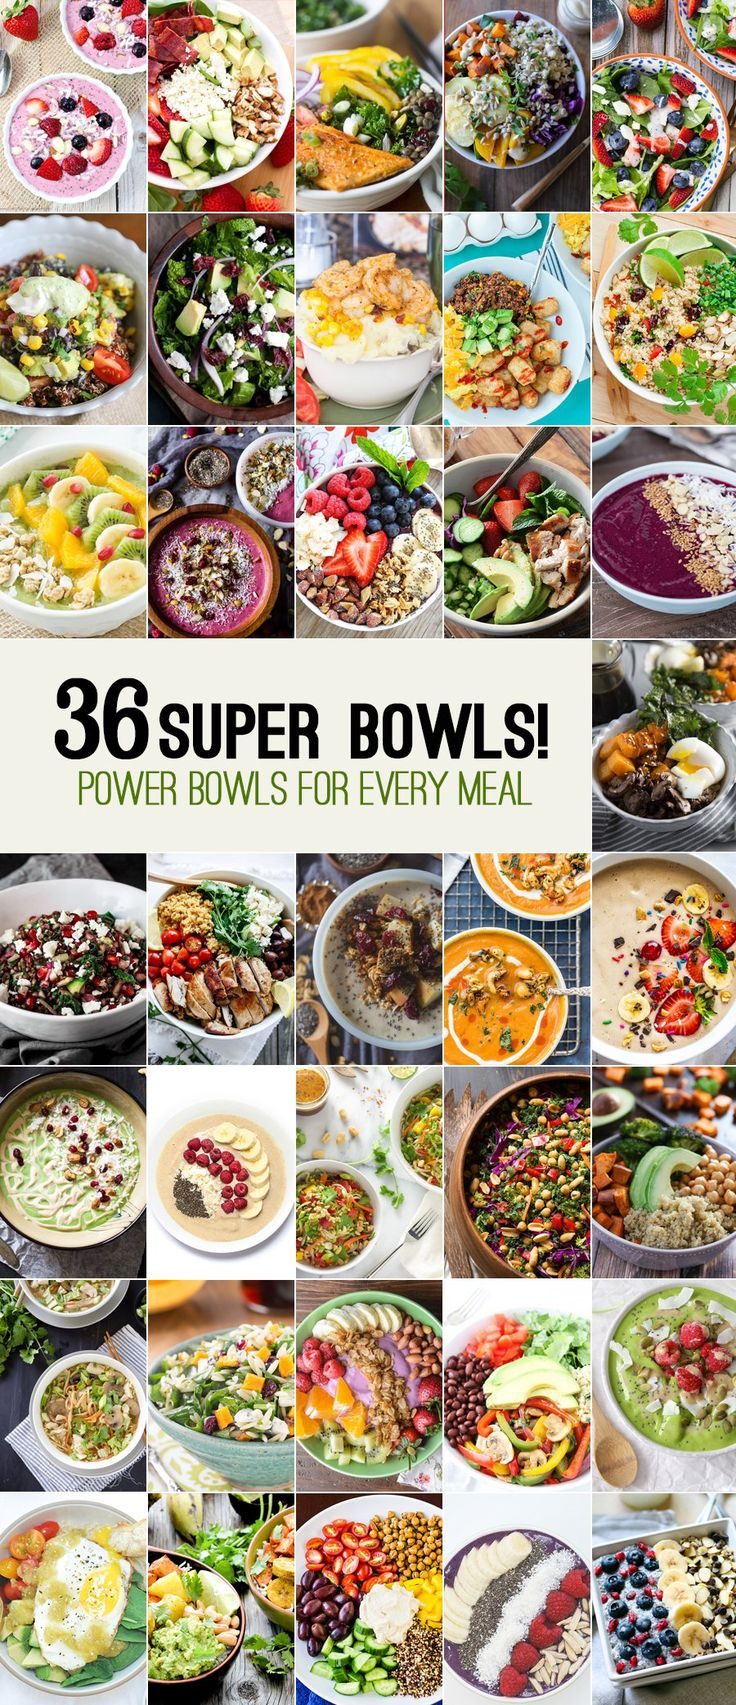 10 Super Bowls – Power Bowls for Every Meal